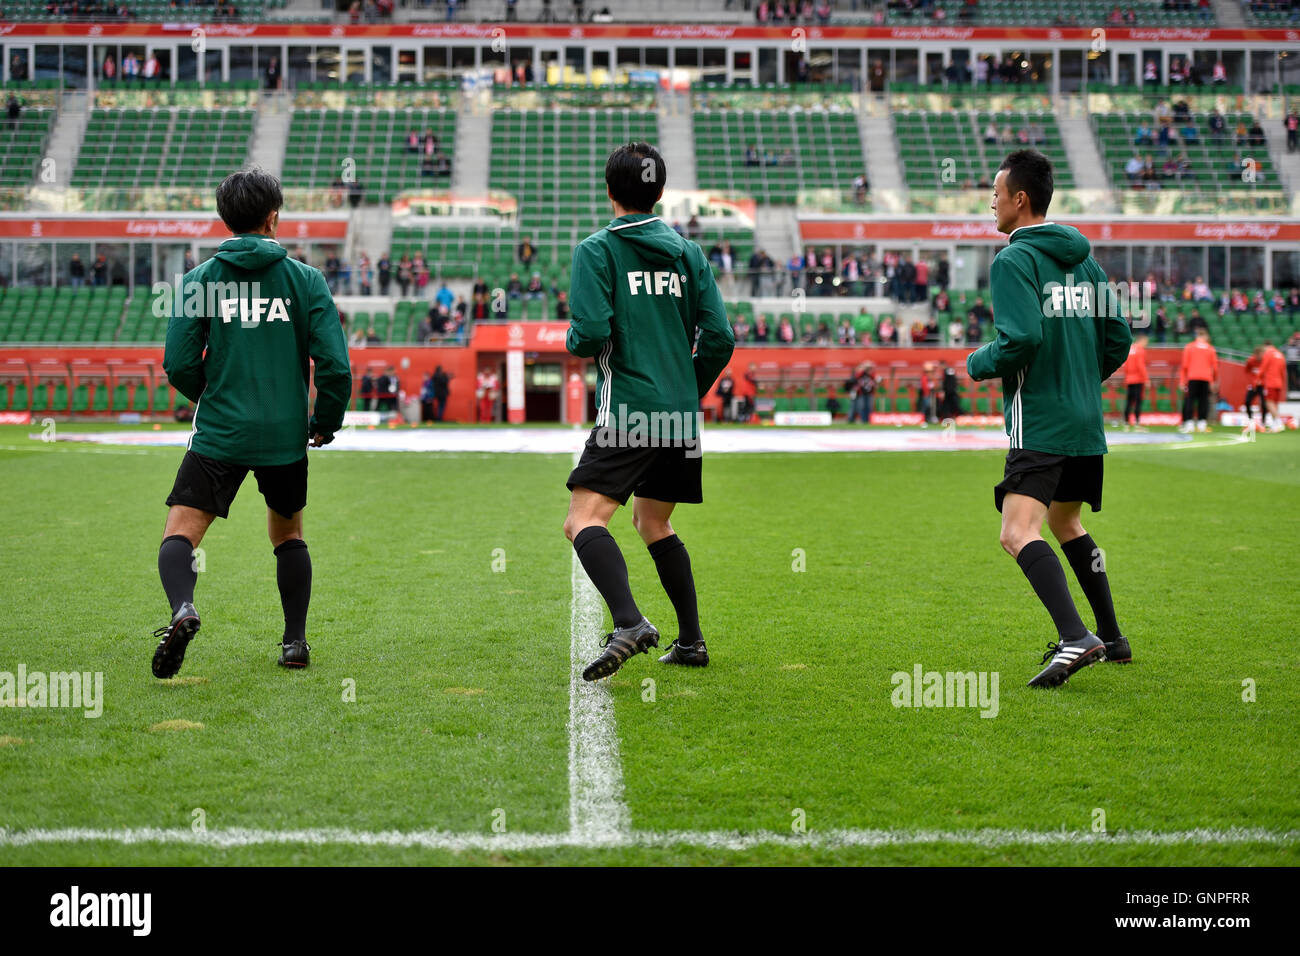 WROCLAW, POLAND - MARCH 26, 2016: Referee's warm-up before International Football friendly match Poland vs Finland - Stock Image